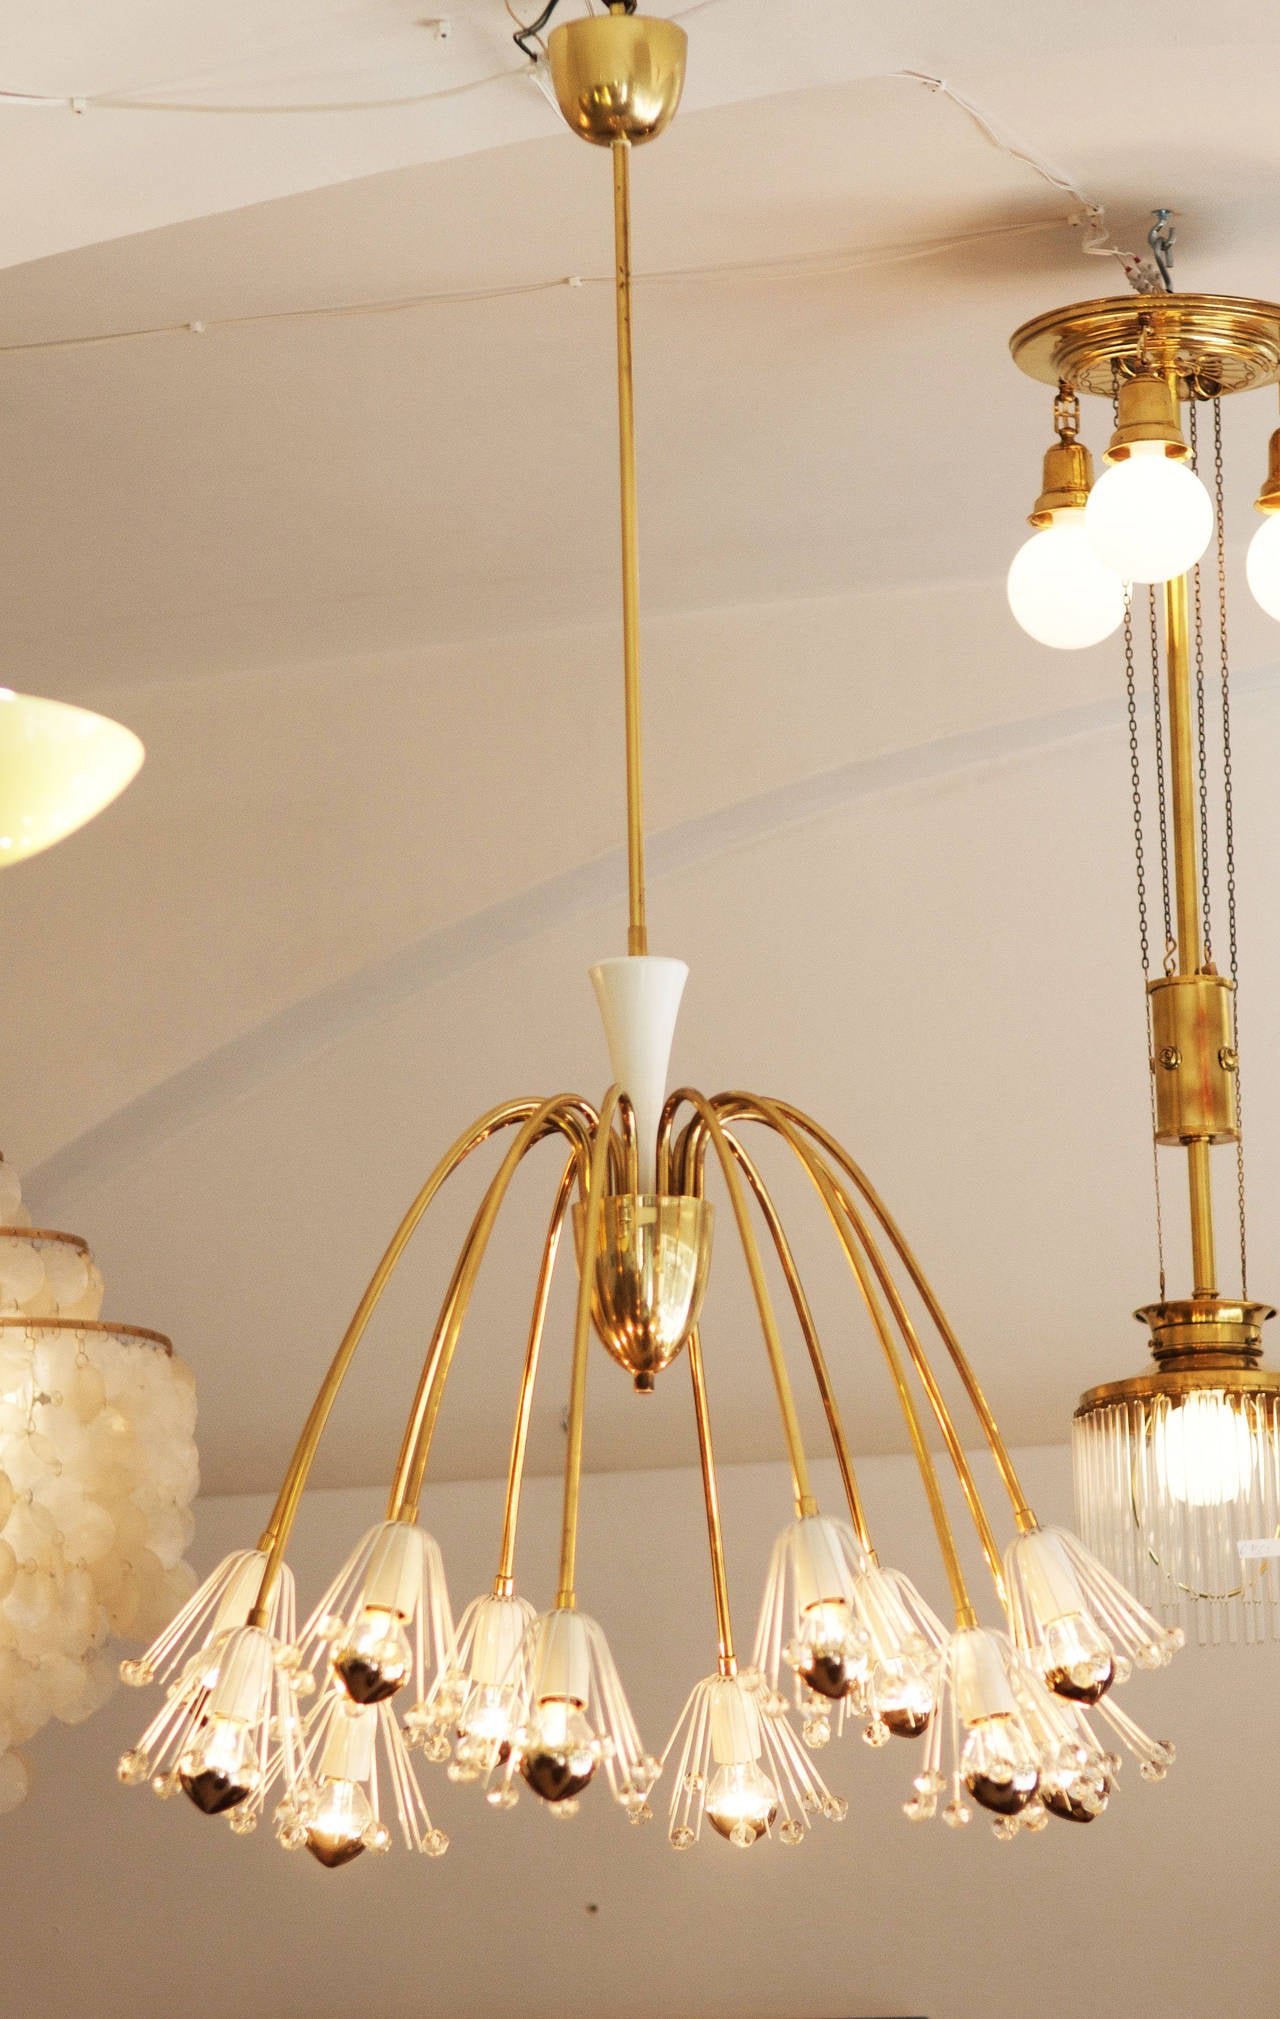 Mid-Century Modern Large Brass Chandelier By Emil Stejnar For Rupert Nikoll For Sale